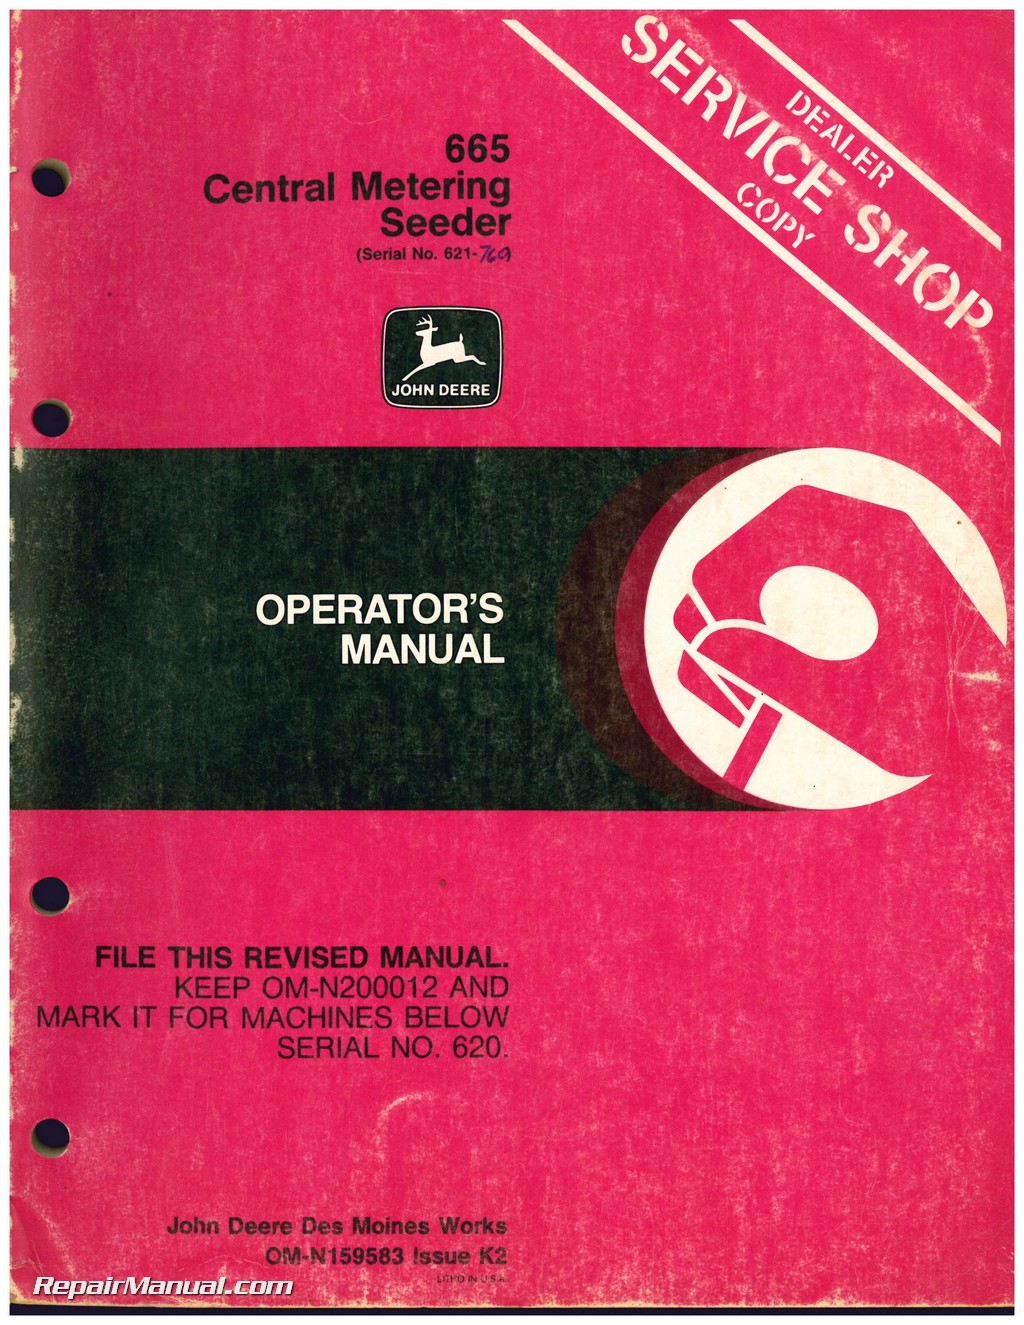 Used John Deere 665 Central Metering Seeder Operators Manual